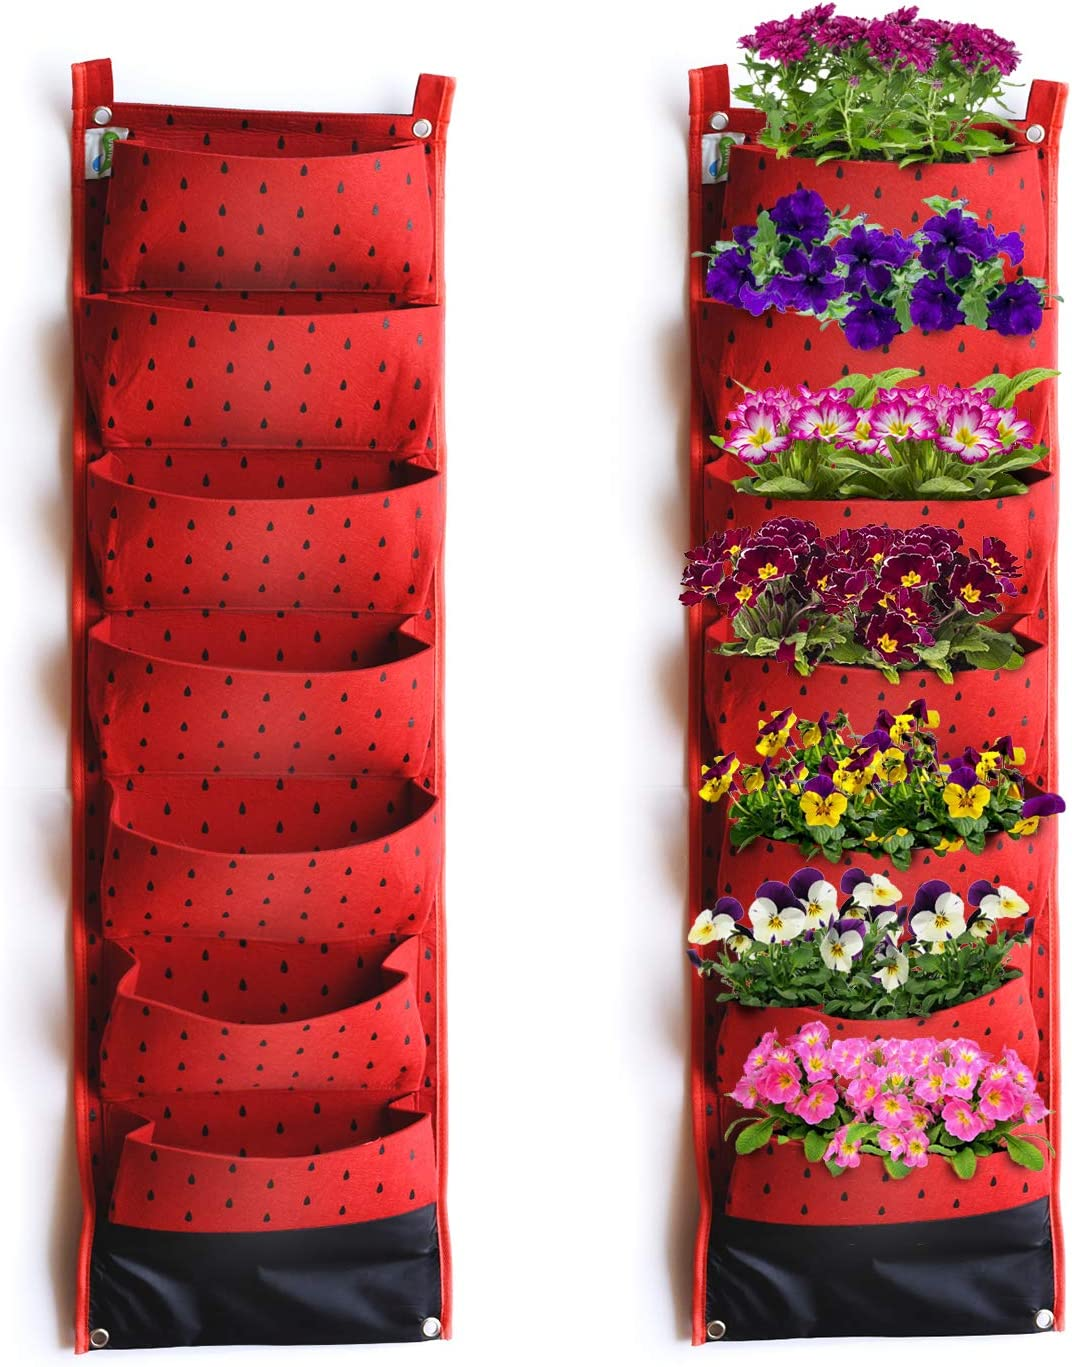 Vertical Hanging Planter w/ 7 Deep Pockets - Waterproof Breathable Wall Mount Planter Pouch for Home and Garden Decor for Fruit Herbs Veggies and Flowers - Fun and Decorative Red w/ Black Polka Dots